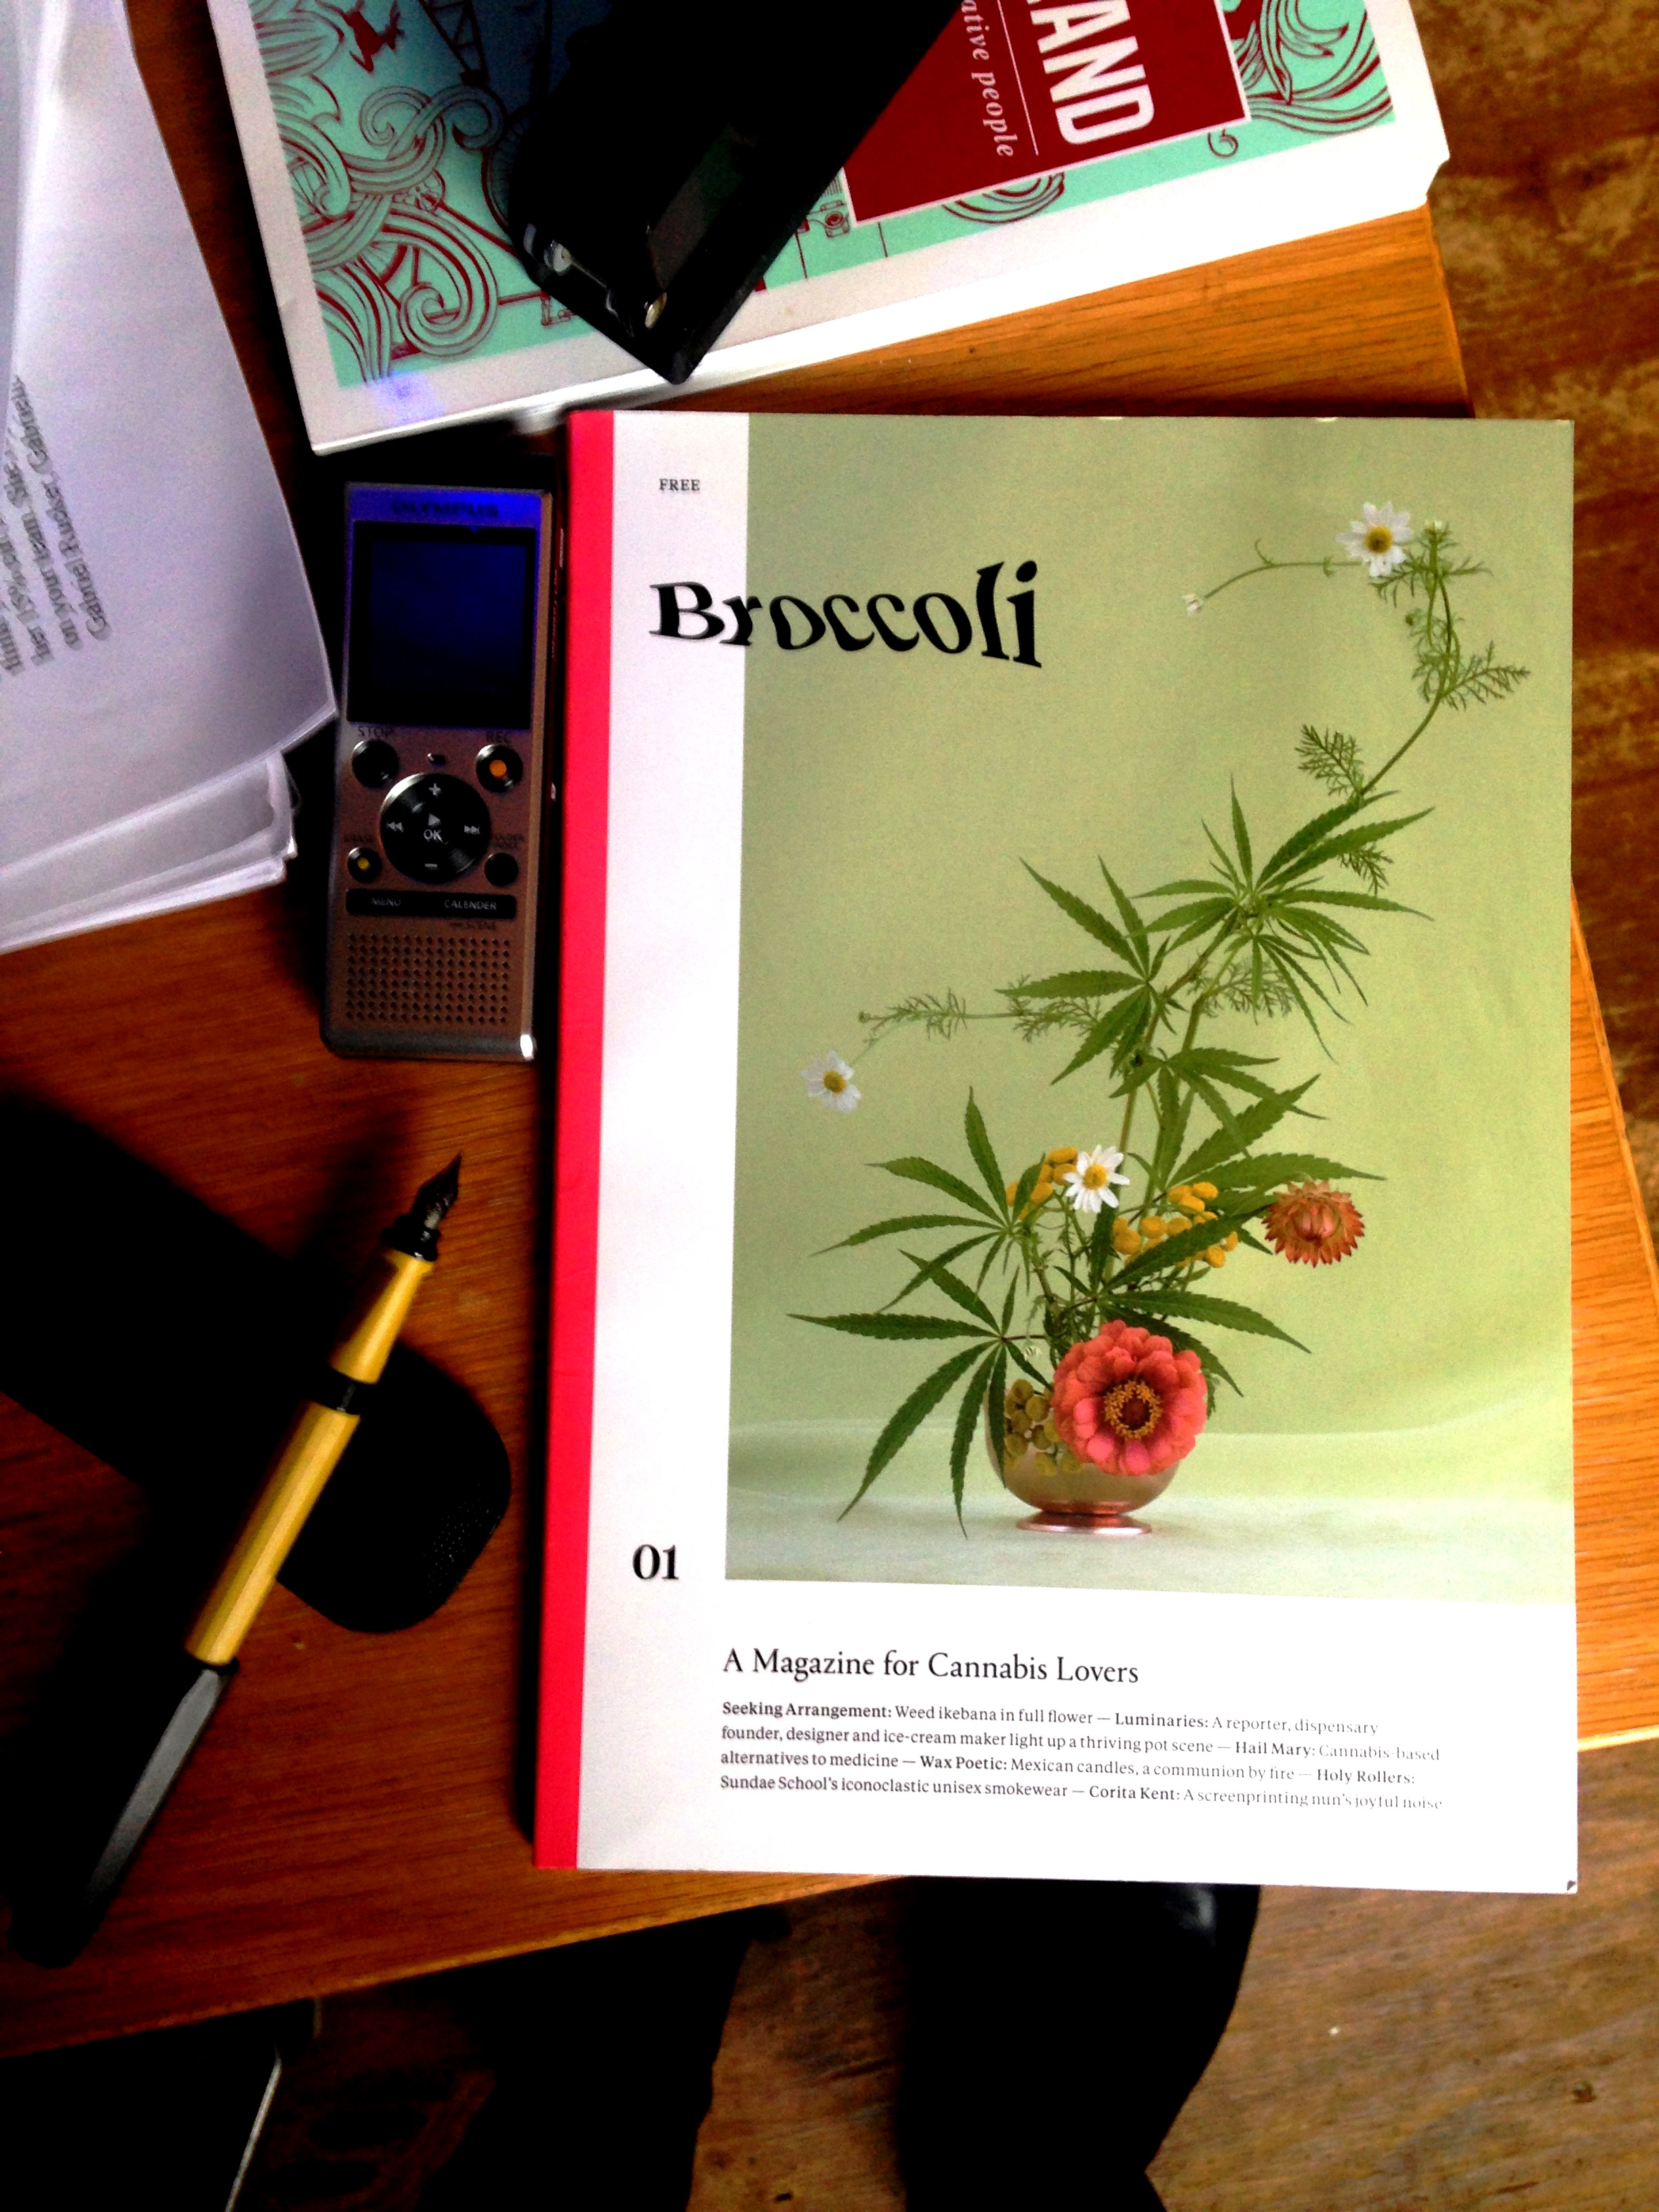 Party attendees got a sneak peek at former Kinfolk art director Anja Charbonneau's new smart and beautiful cannabis magazine   Broccoli   (for women by women) from Anja herself!!The magazine launched in late 2017 and issue 2 comes out this spring.And....